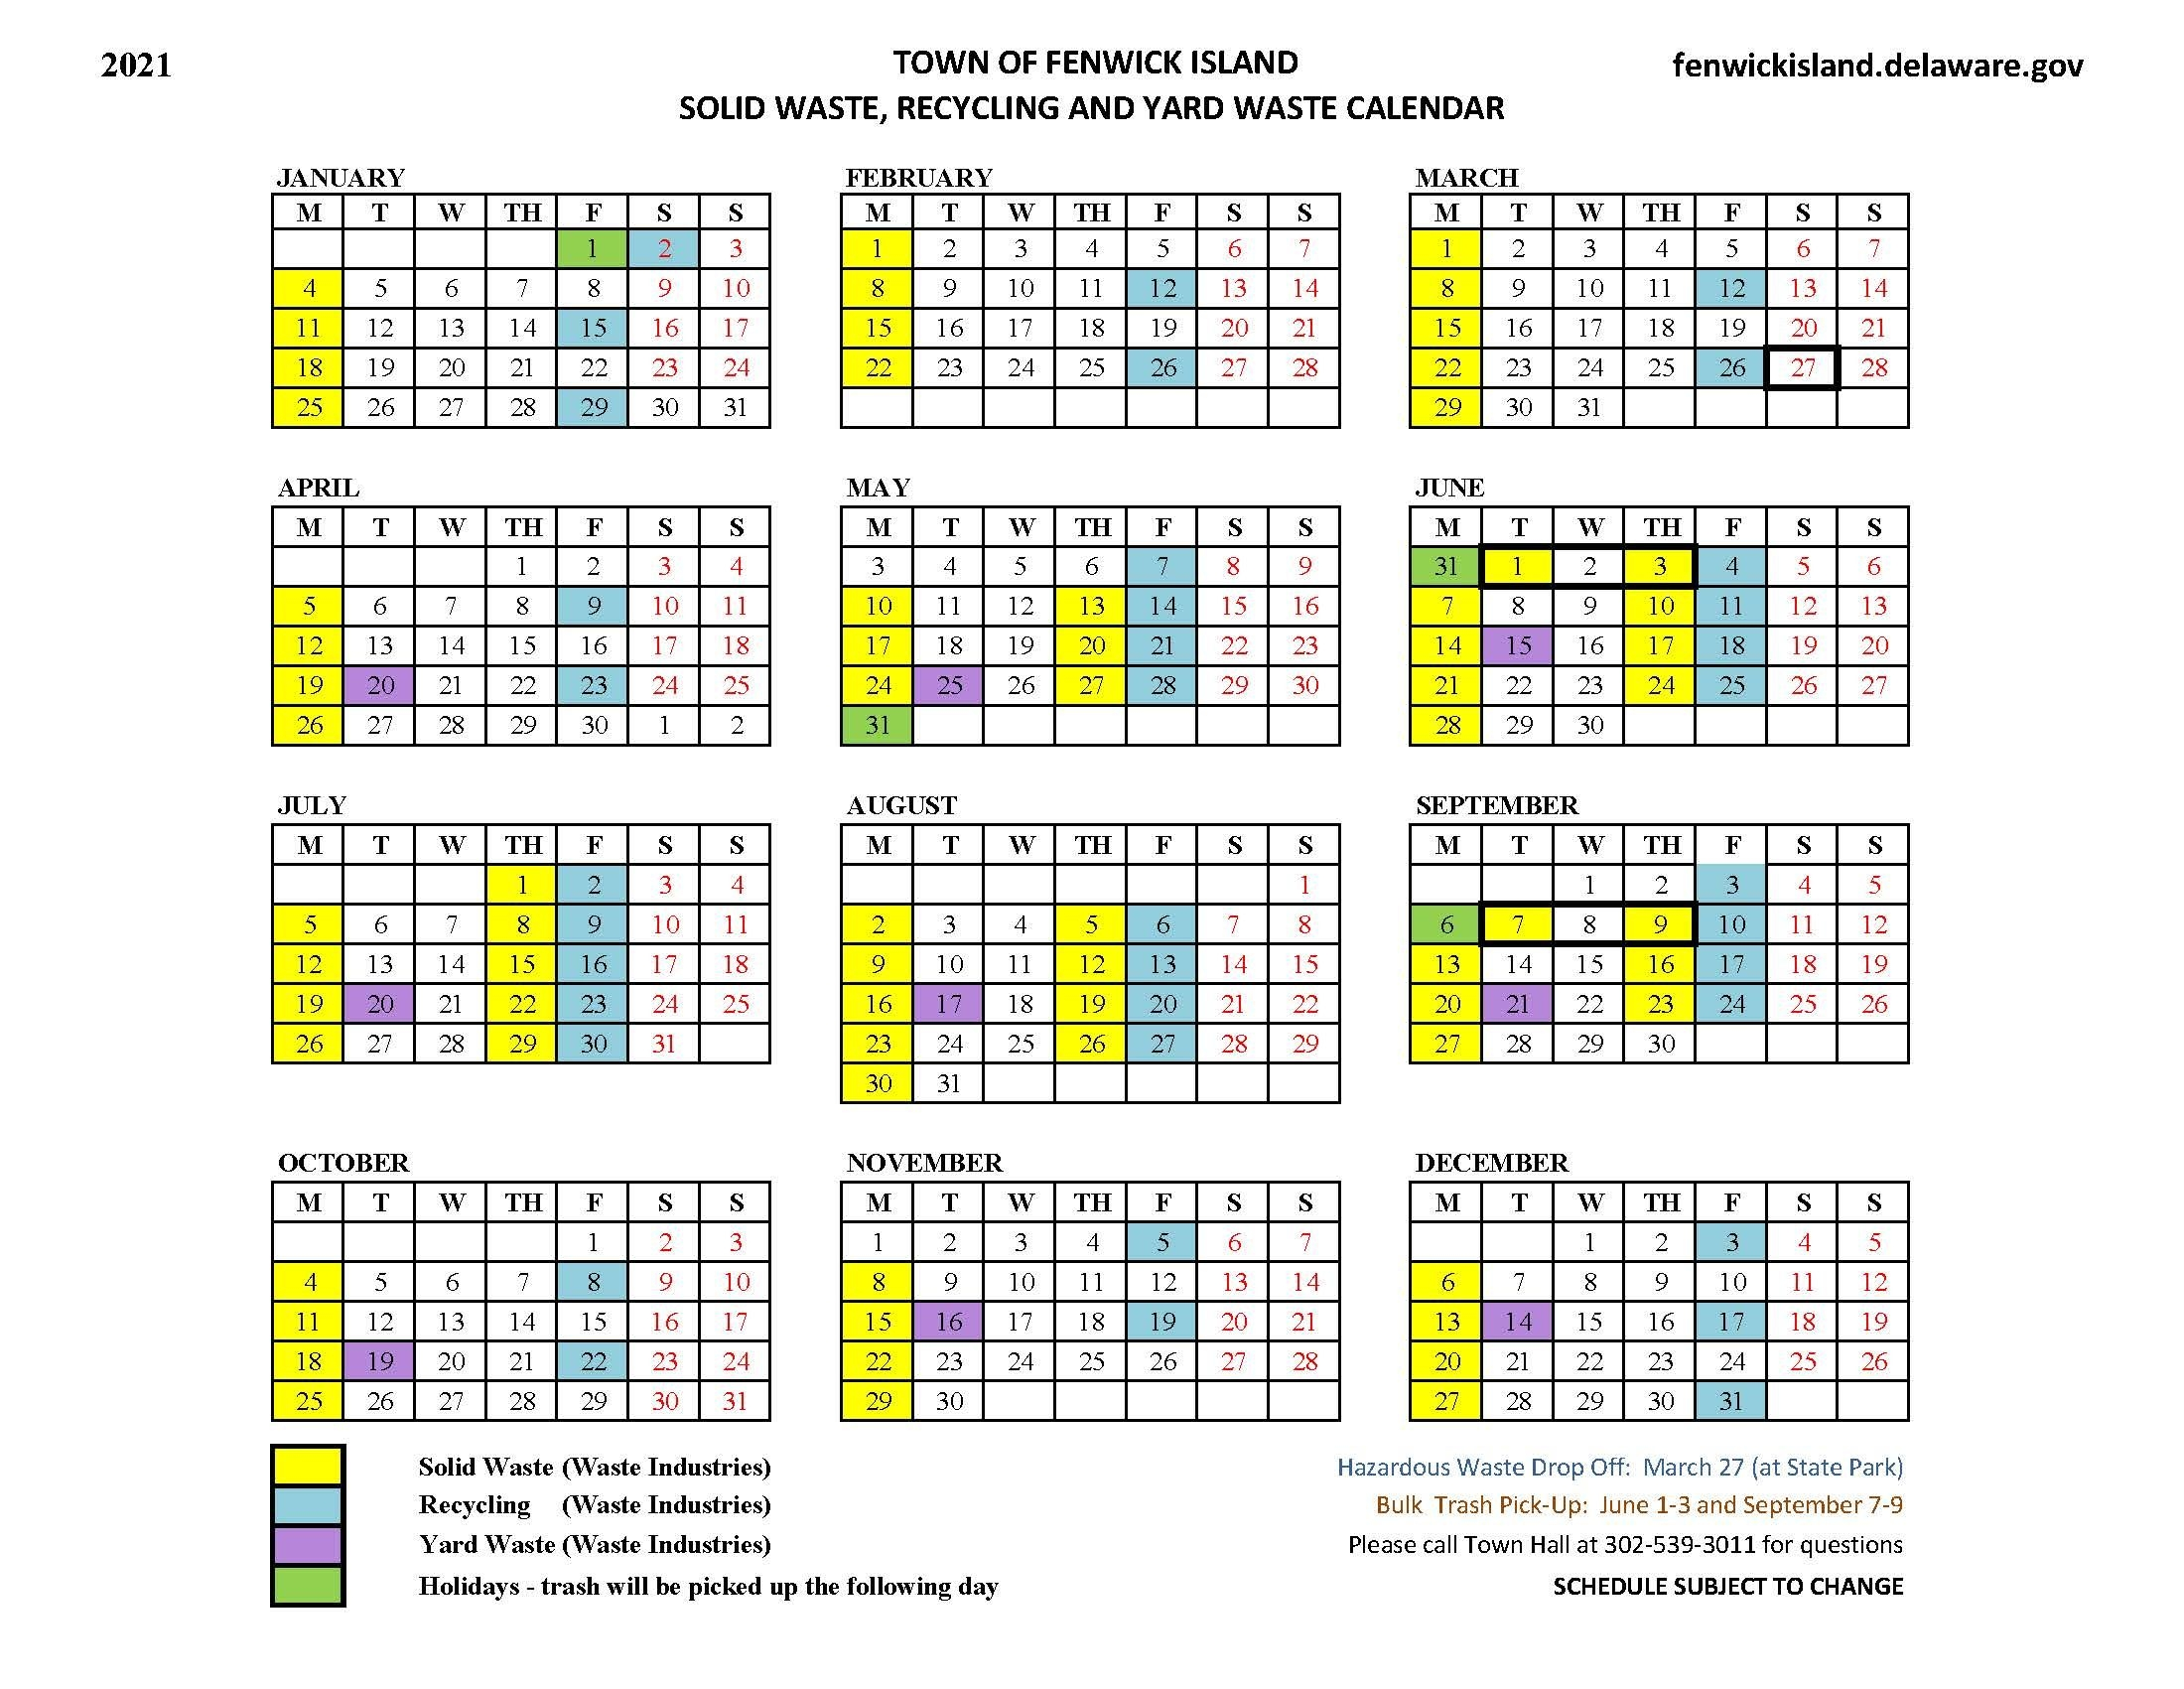 2021 Solid Waste, Recycling And Yard Waste Calendar